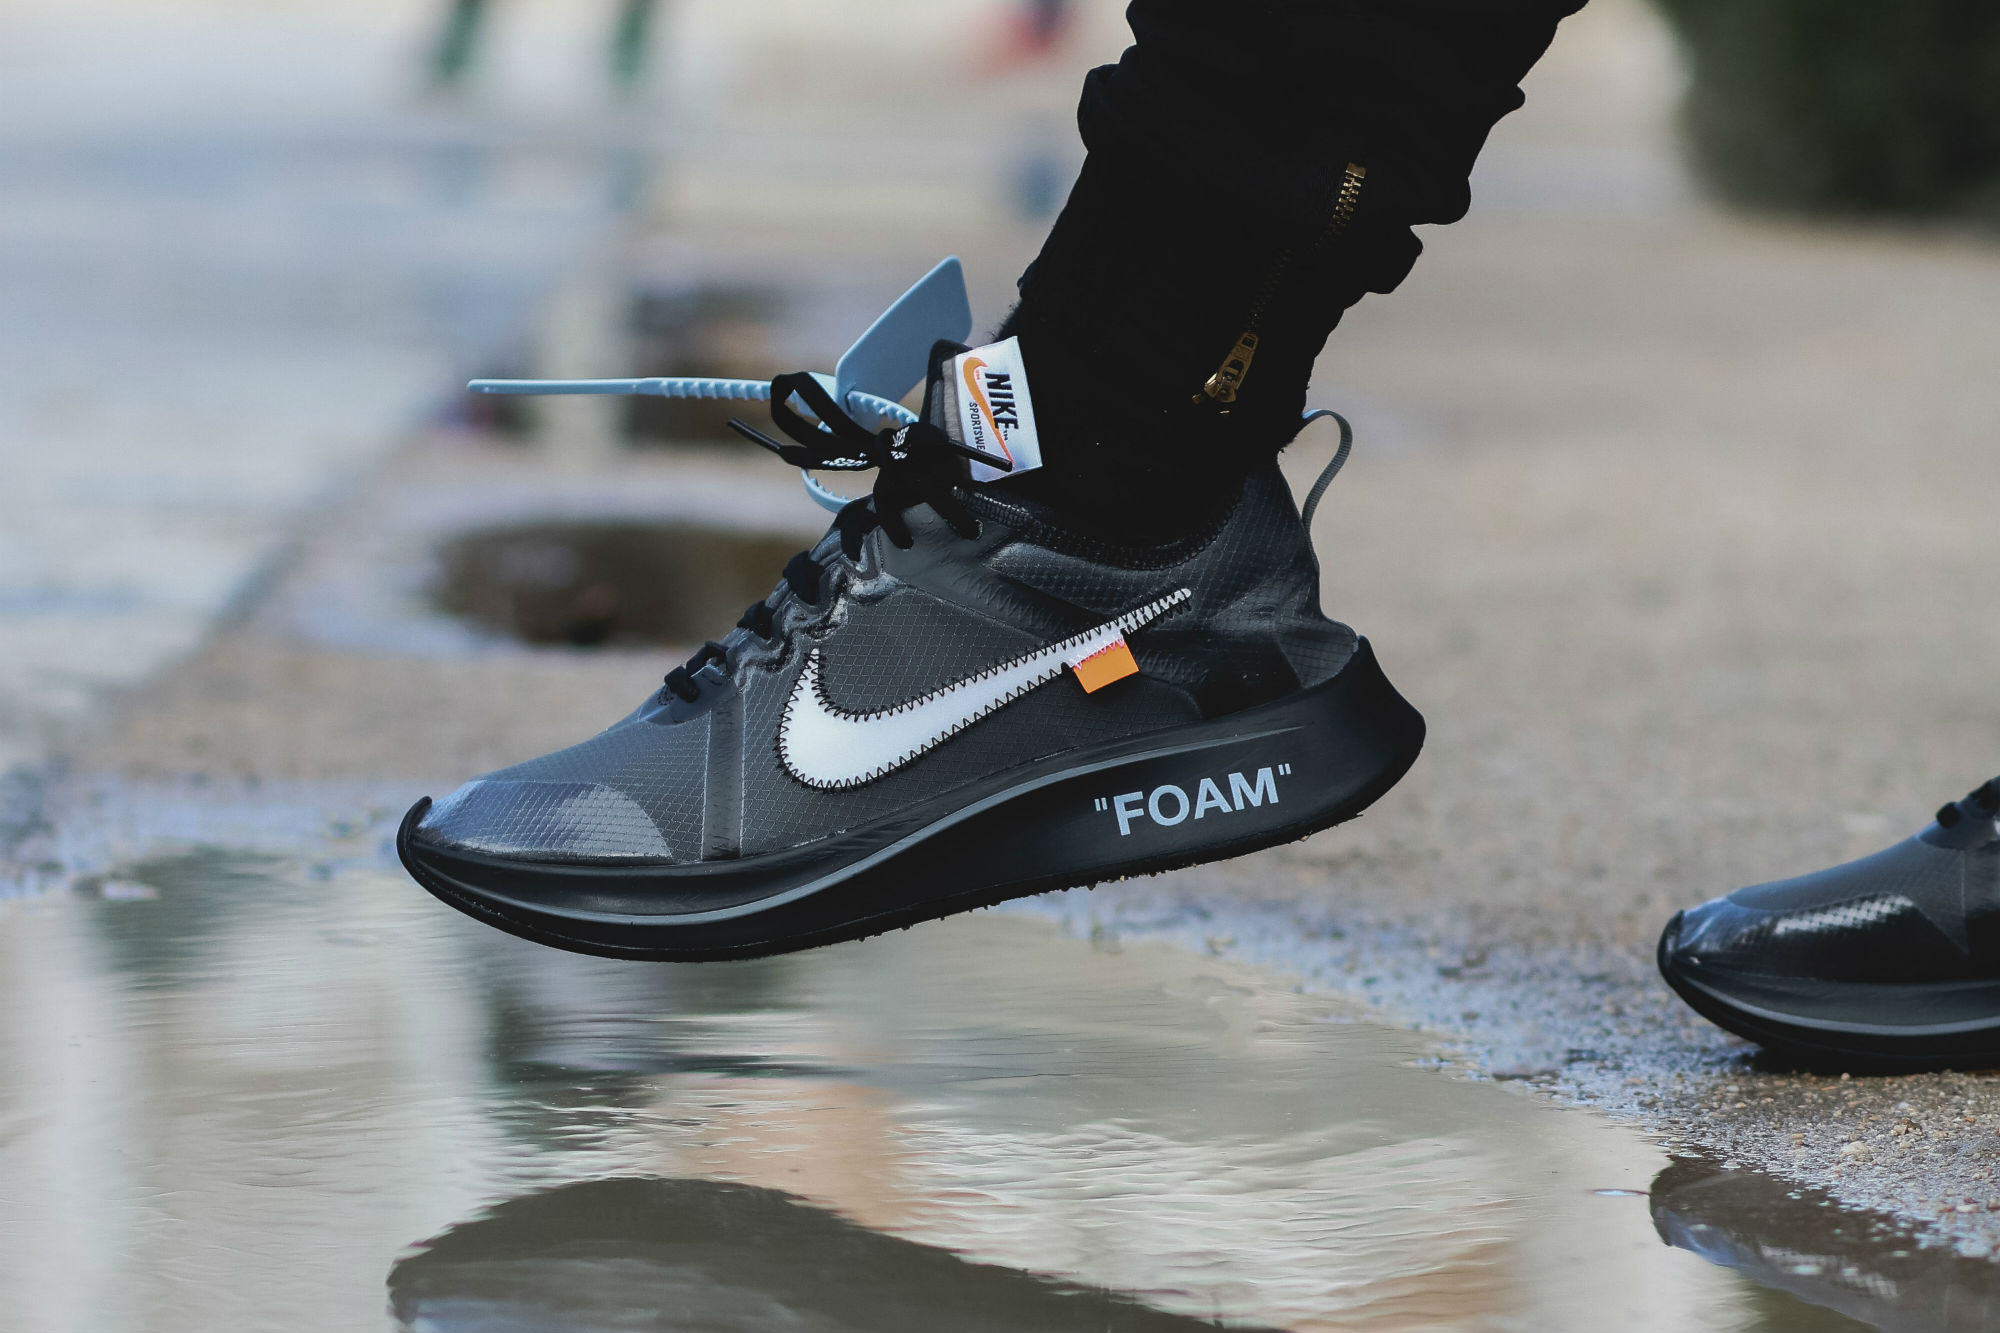 The OFF-WHITE x Nike Zoom Fly SP Black